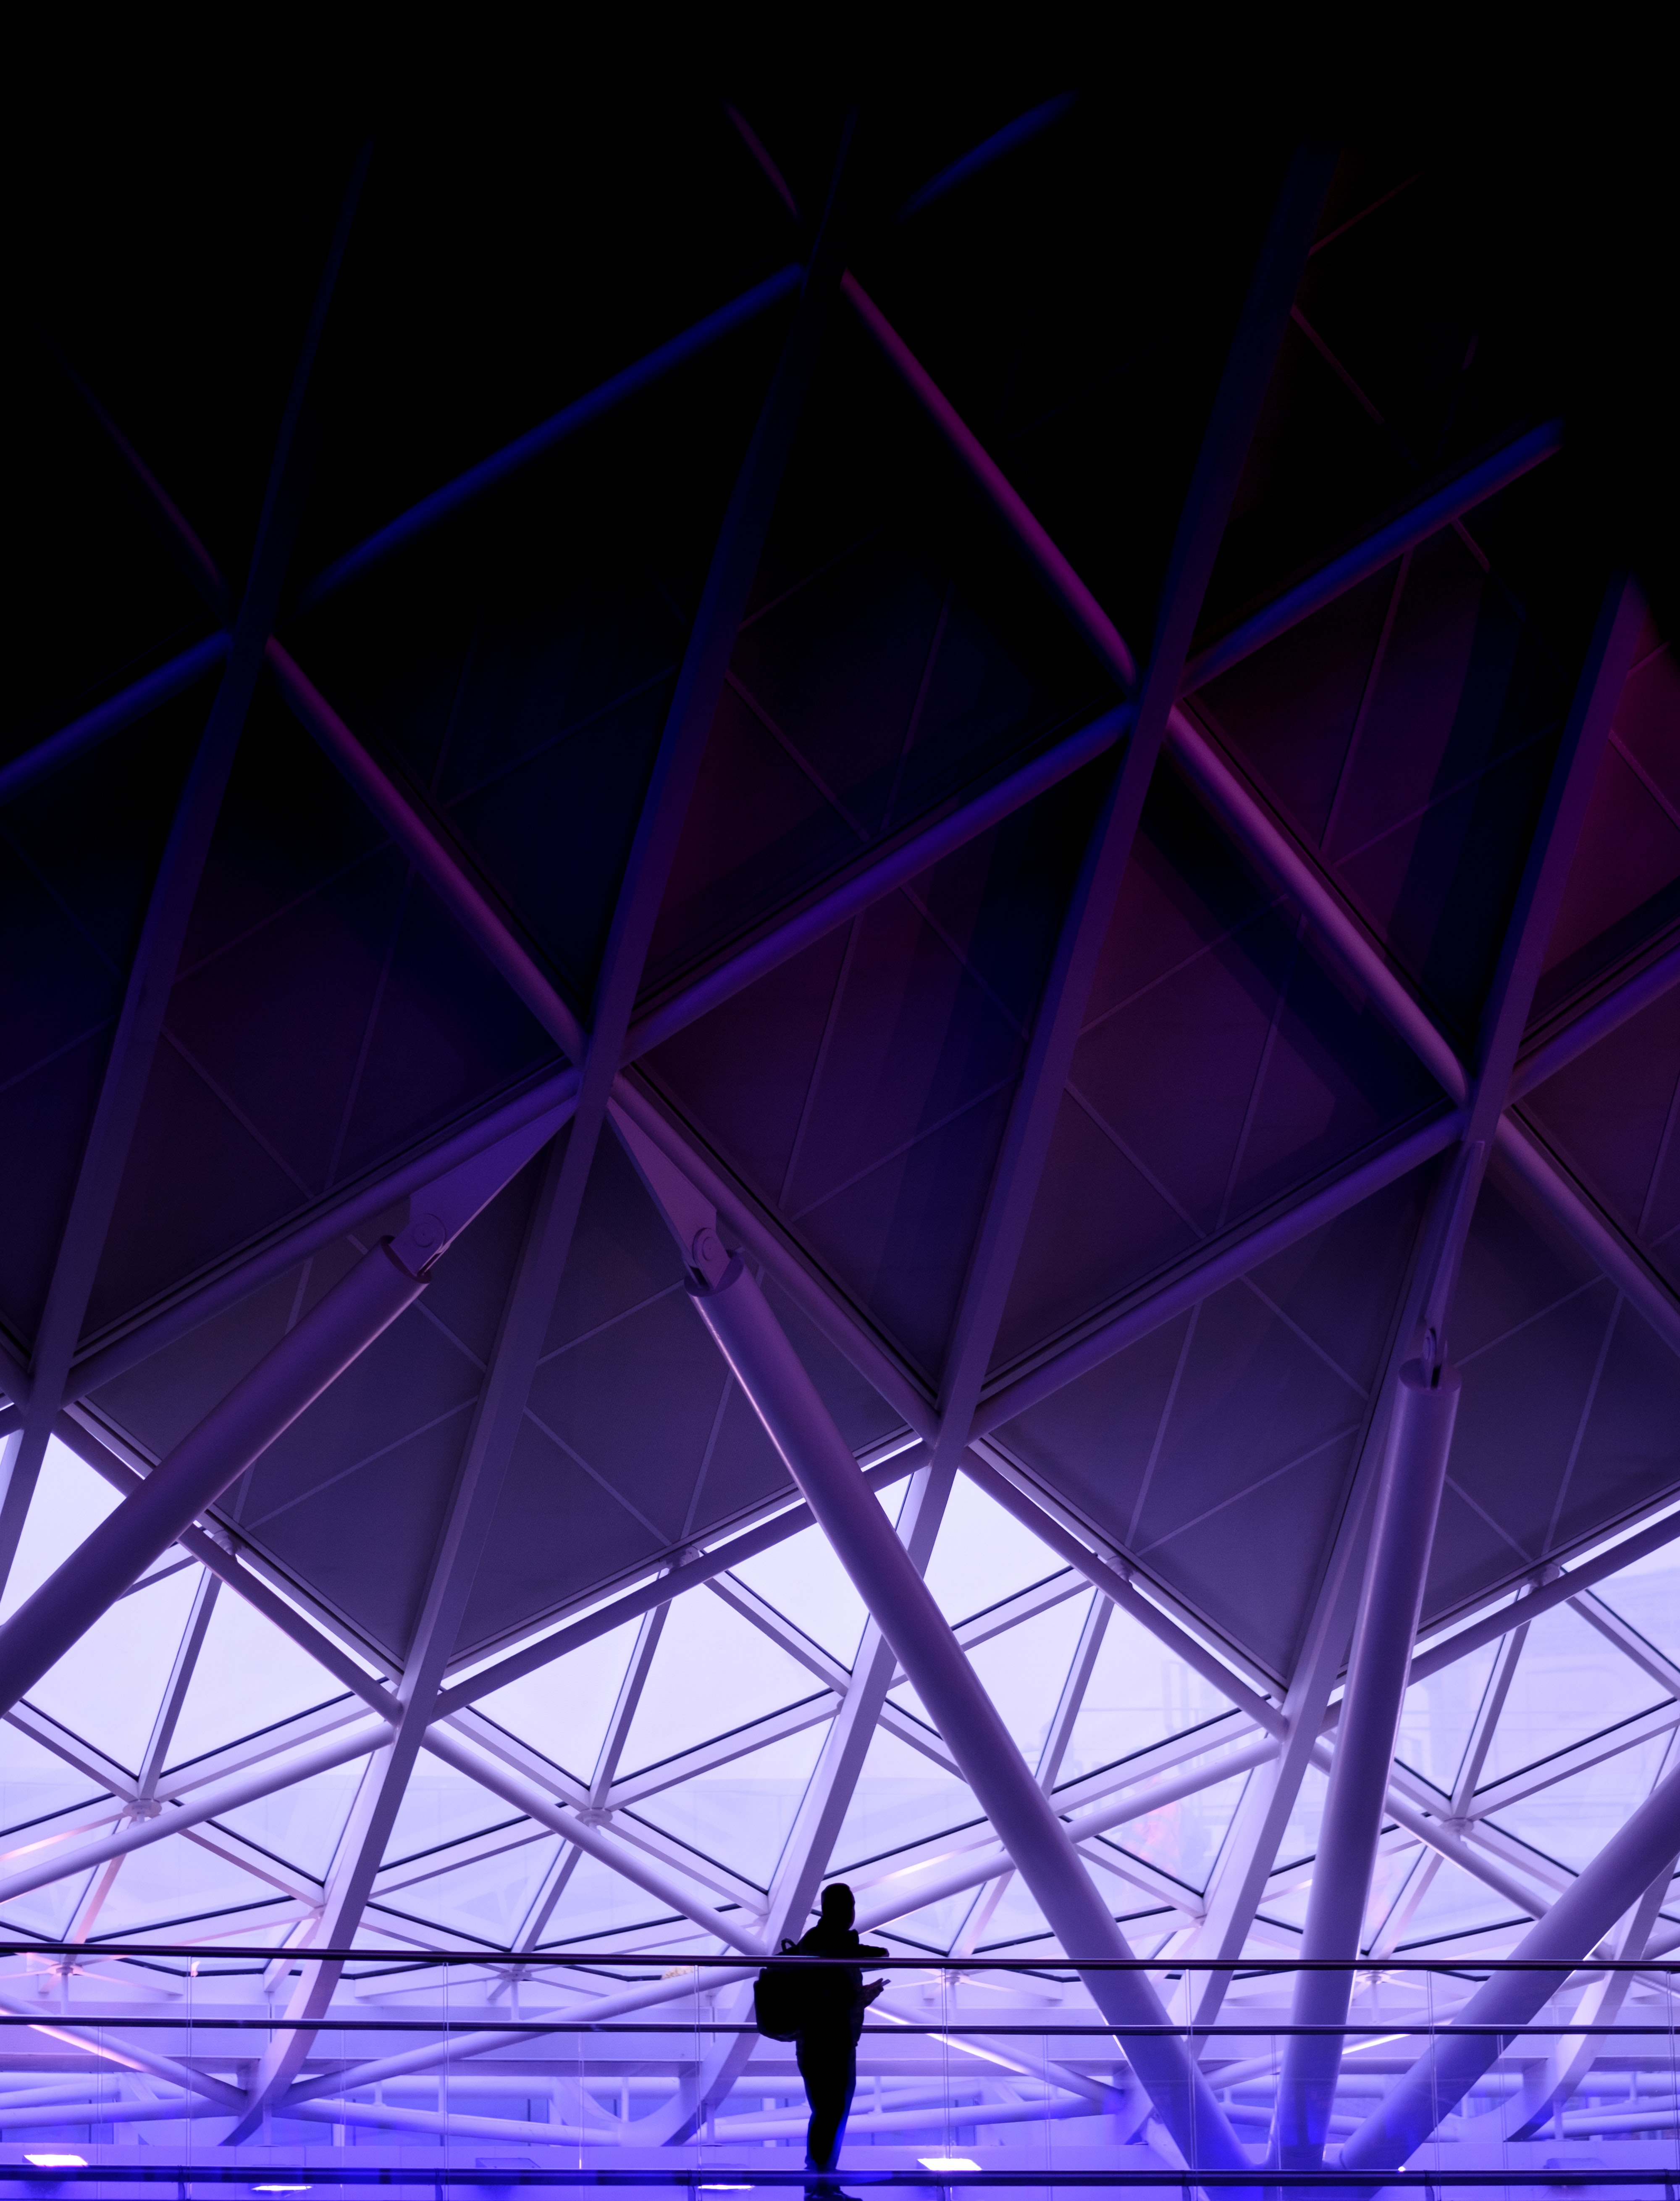 A silhouette of a person against the backdrop of a purple-hued steel structure